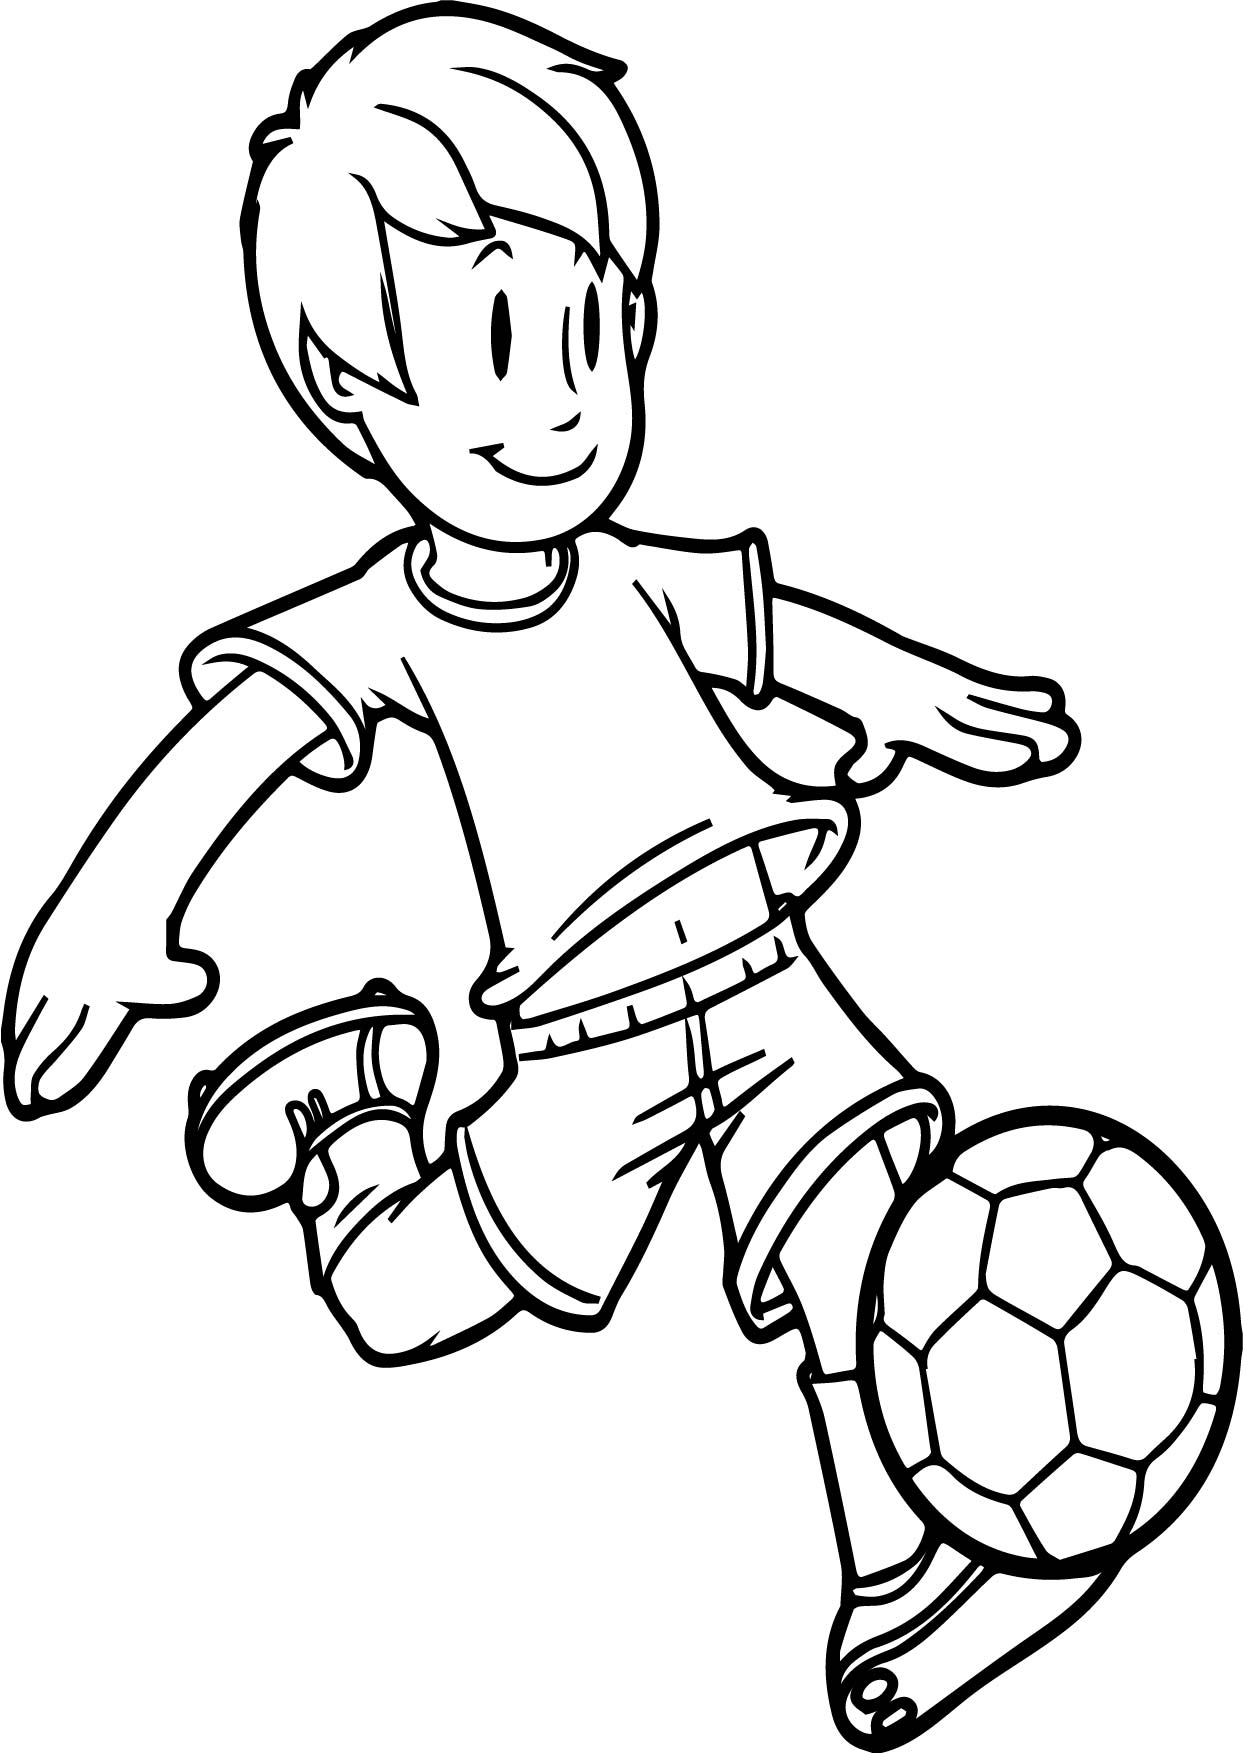 1243x1754 Boy Playing Football Drawing Cartoon Boy Playing Soccer Kid Ball